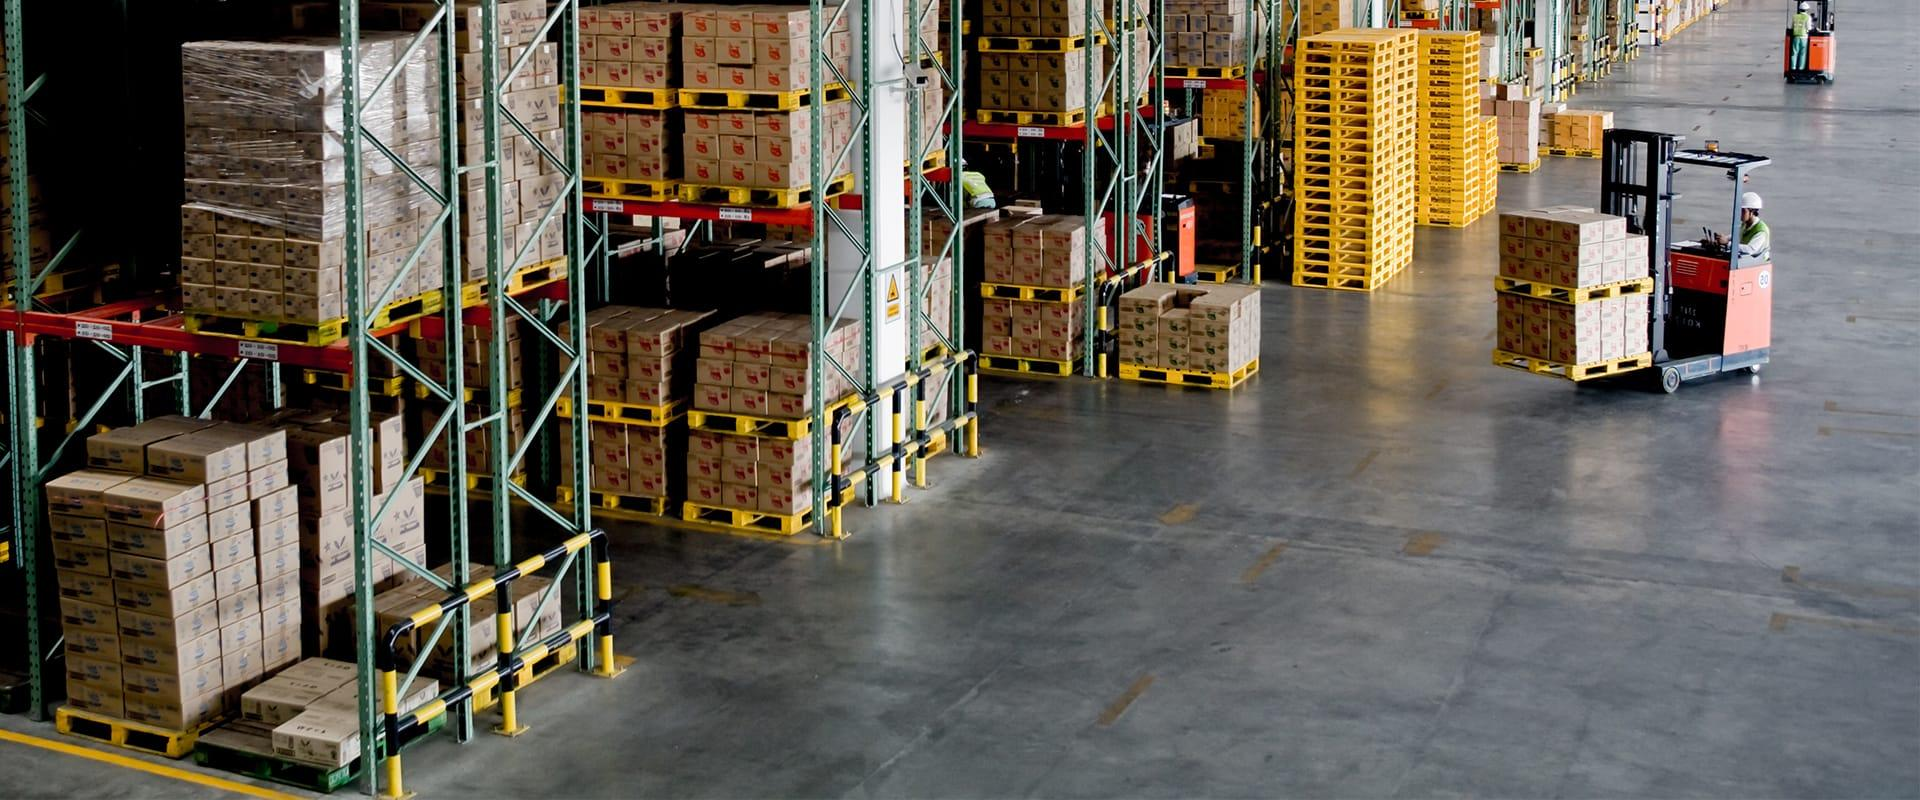 interior of a large warehouse in columbia south carolina